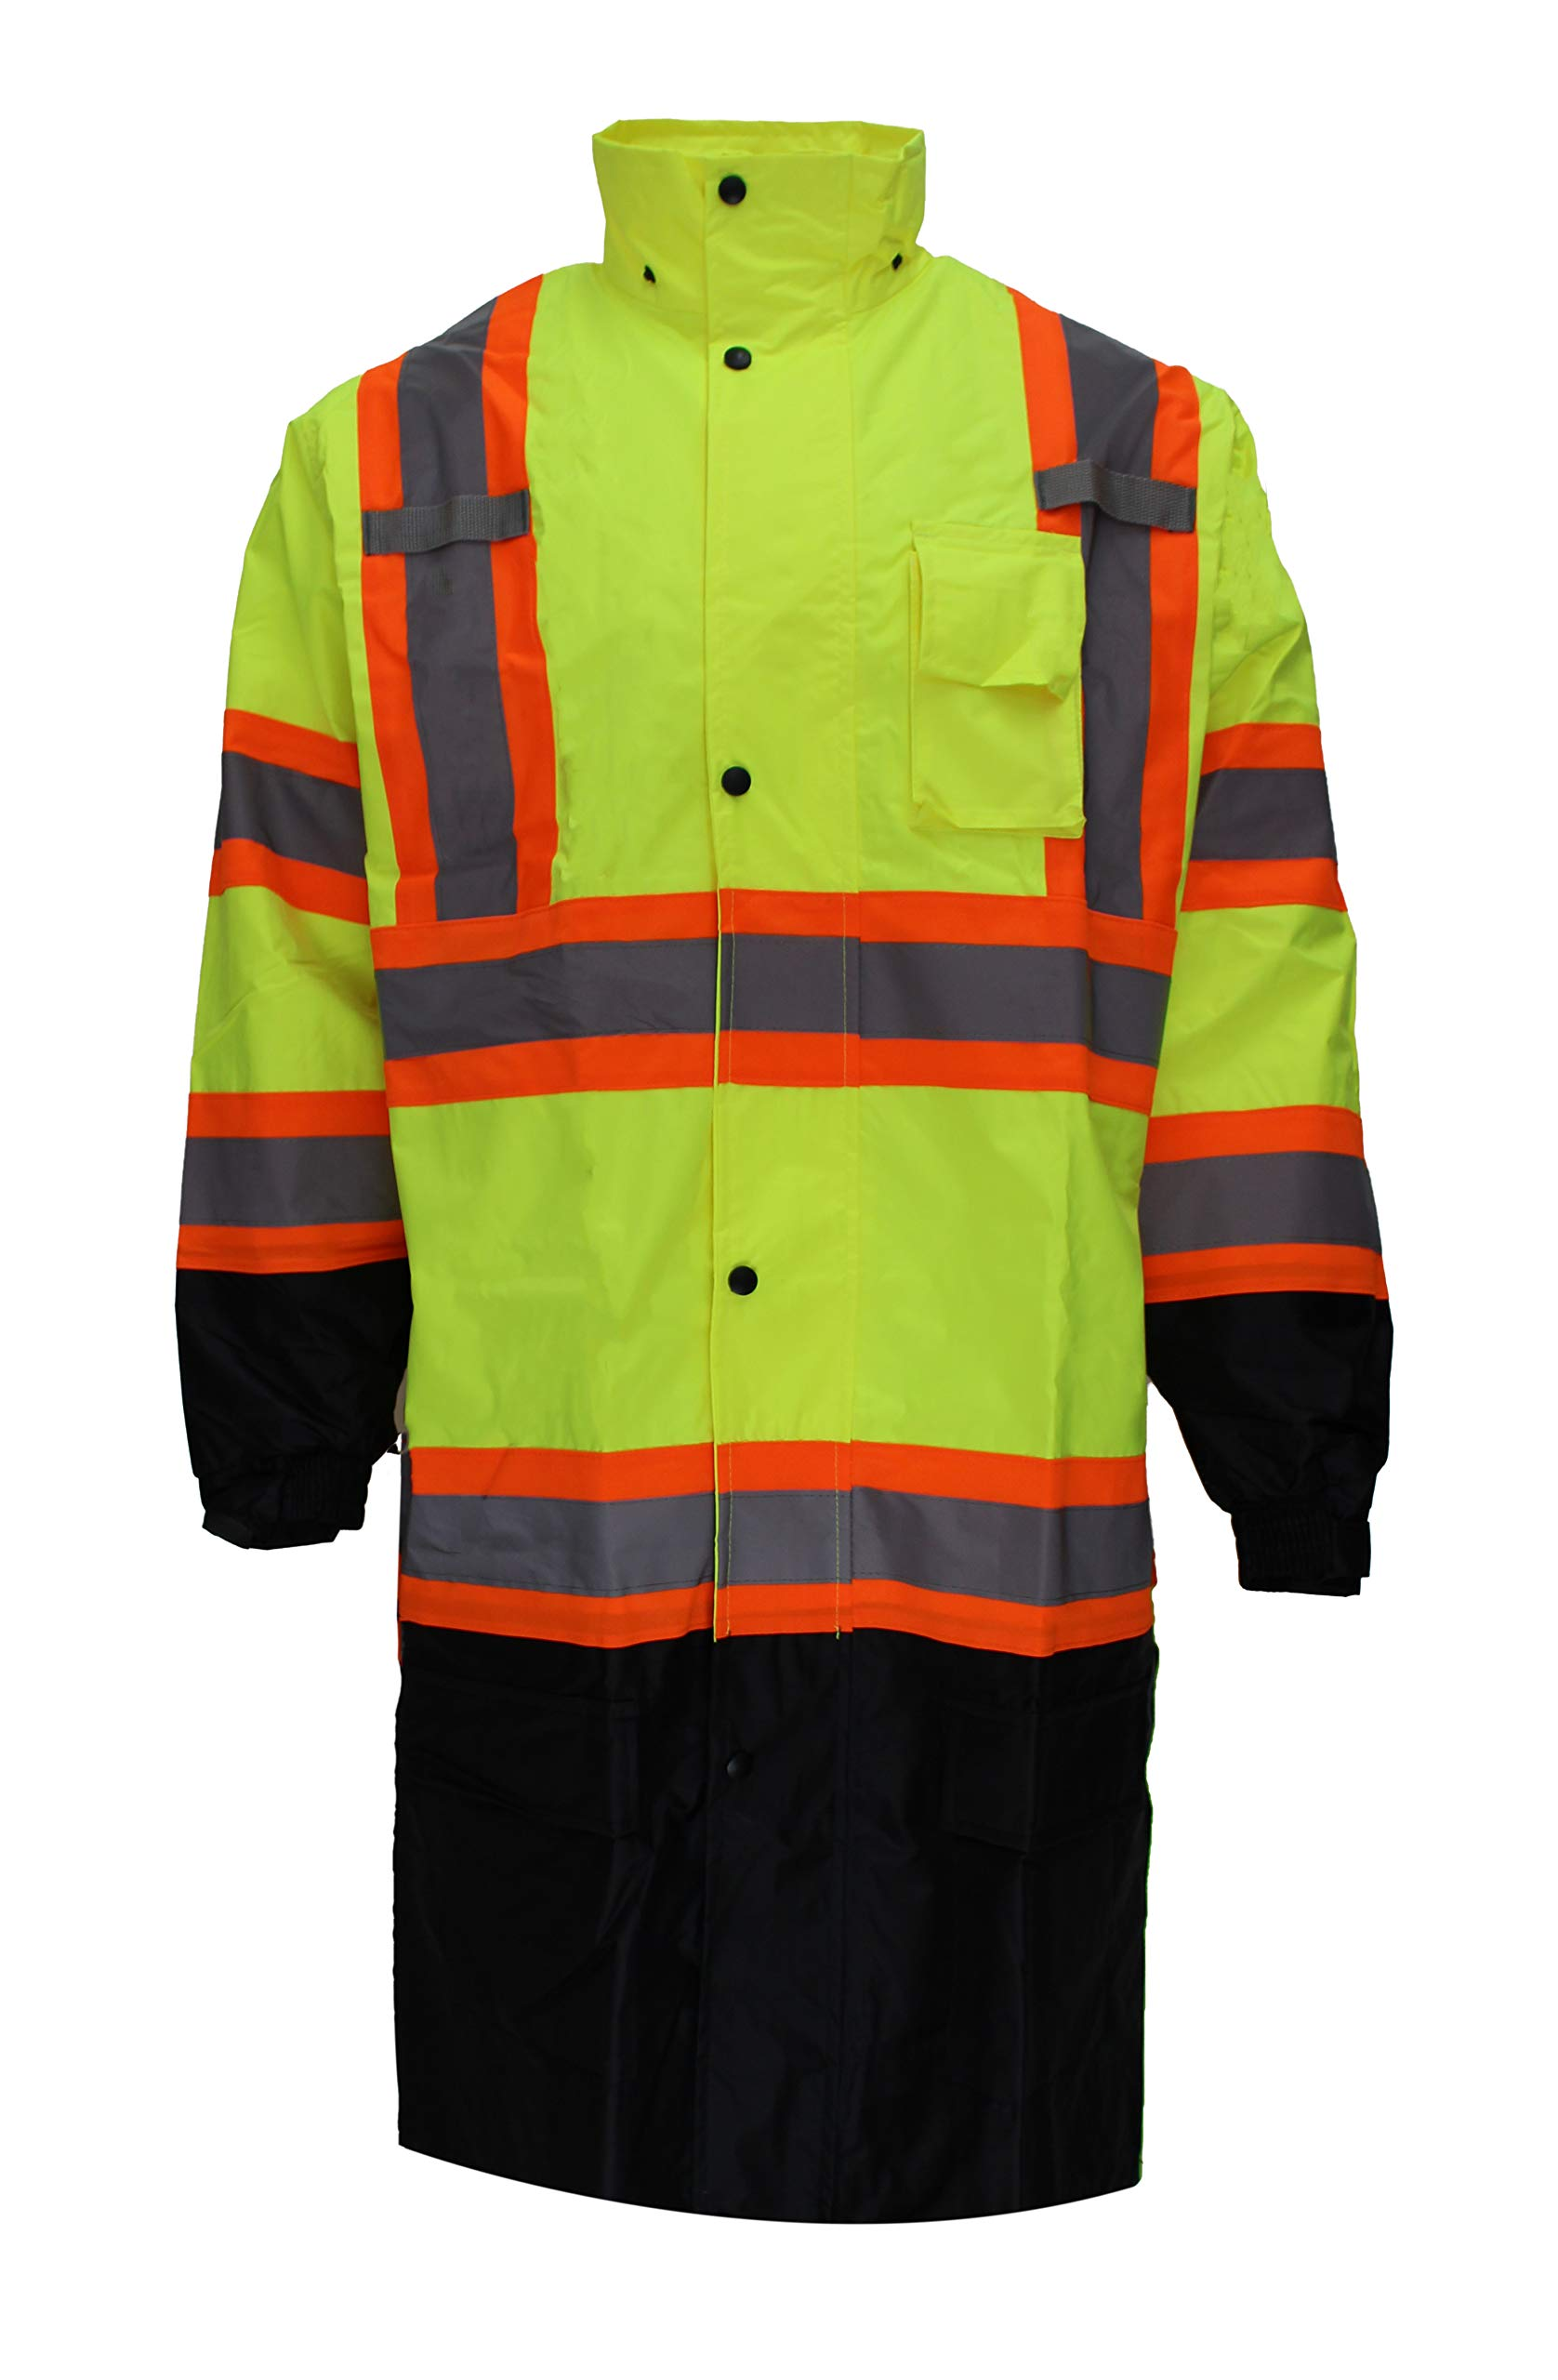 RK Safety RC-CLA3-TLM66 Class 3 Rainwear Reflective Hi-Viz Black Bottom Long Rain Coat with X pattern (Extra Large, Lime)